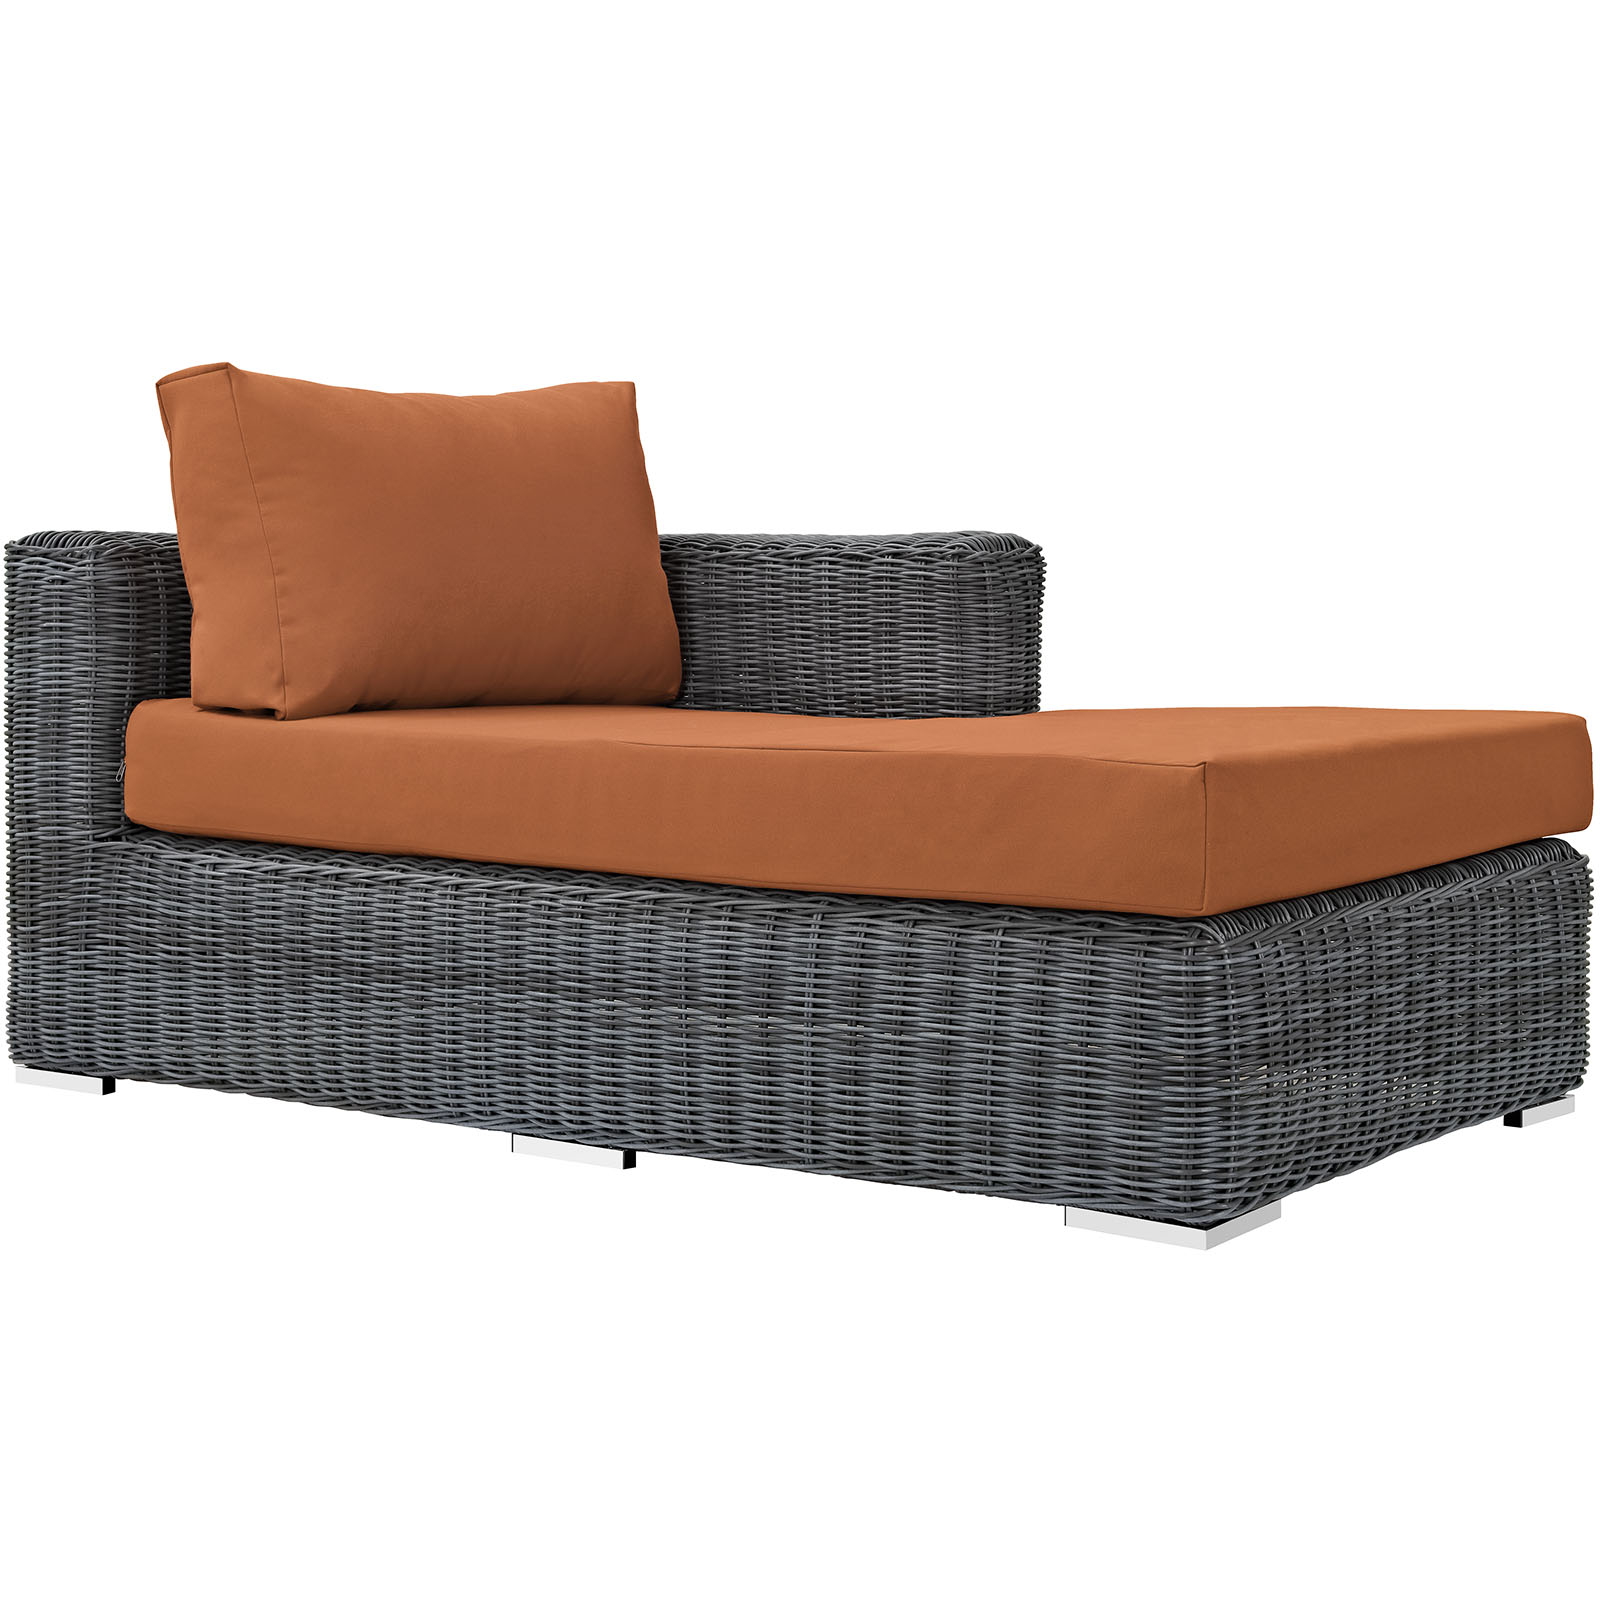 Modern Contemporary Urban Design Outdoor Patio Balcony Right Arm Chaise Lounge Chair, Orange, Rattan